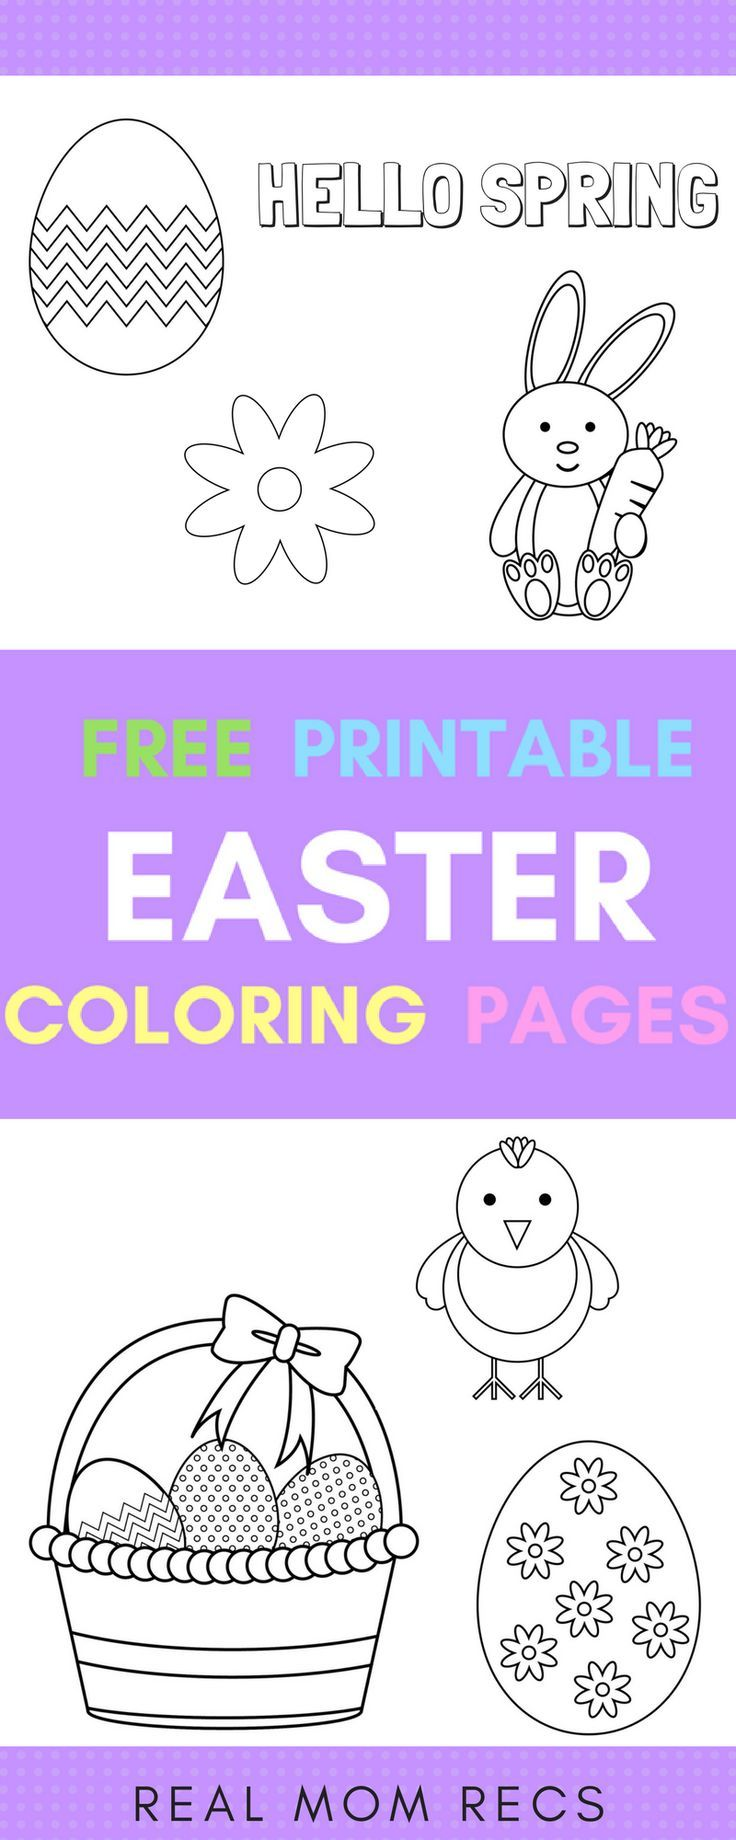 Free Printable Easter Coloring Pages | Being a Mom is Hard Group ...